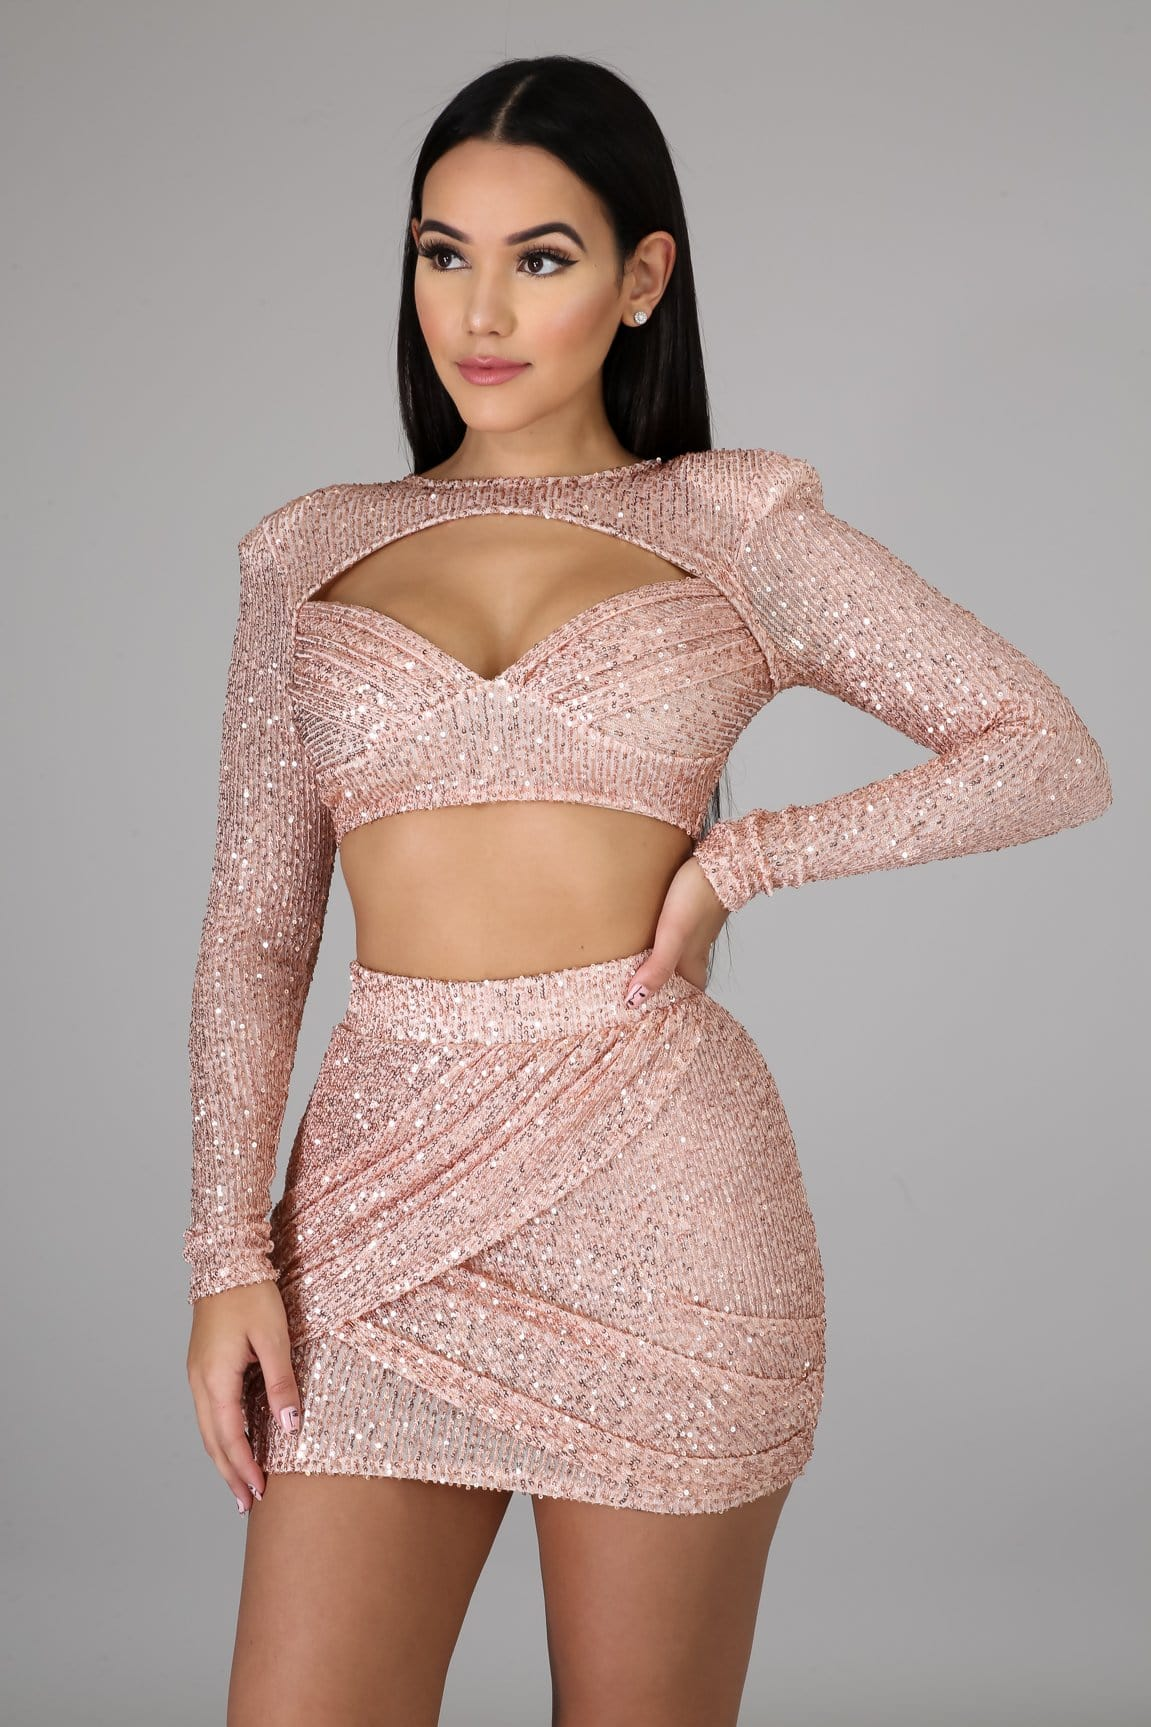 Star Of The Party Skirt Set